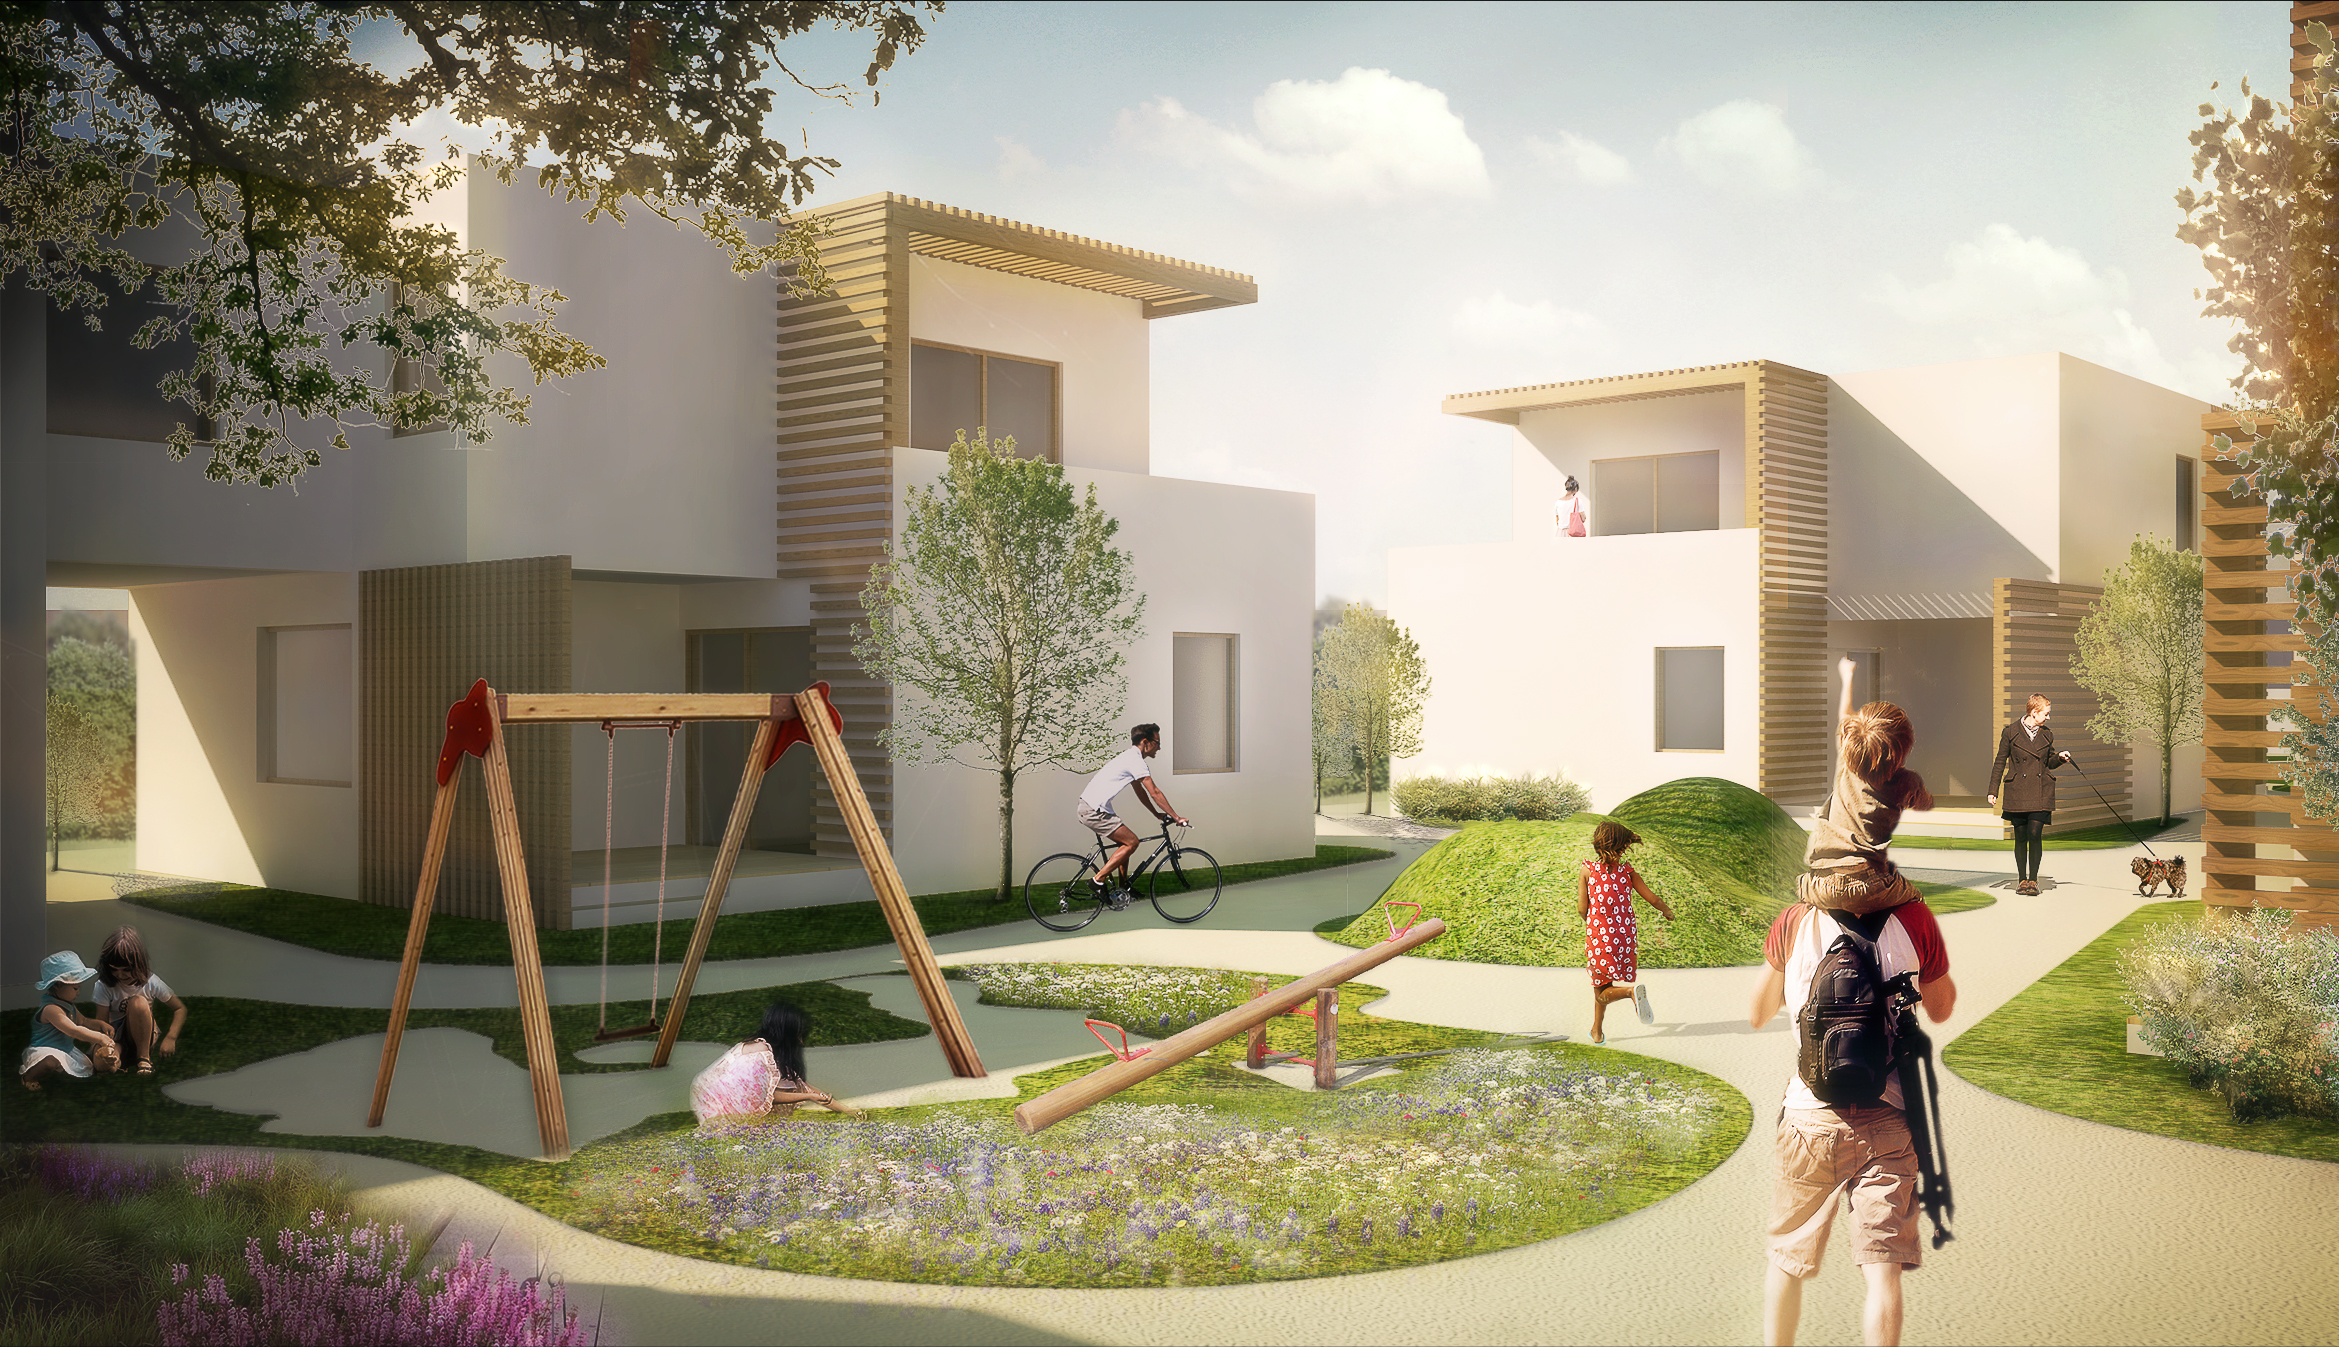 Eco Green Village : Social Housing urban planning proposal